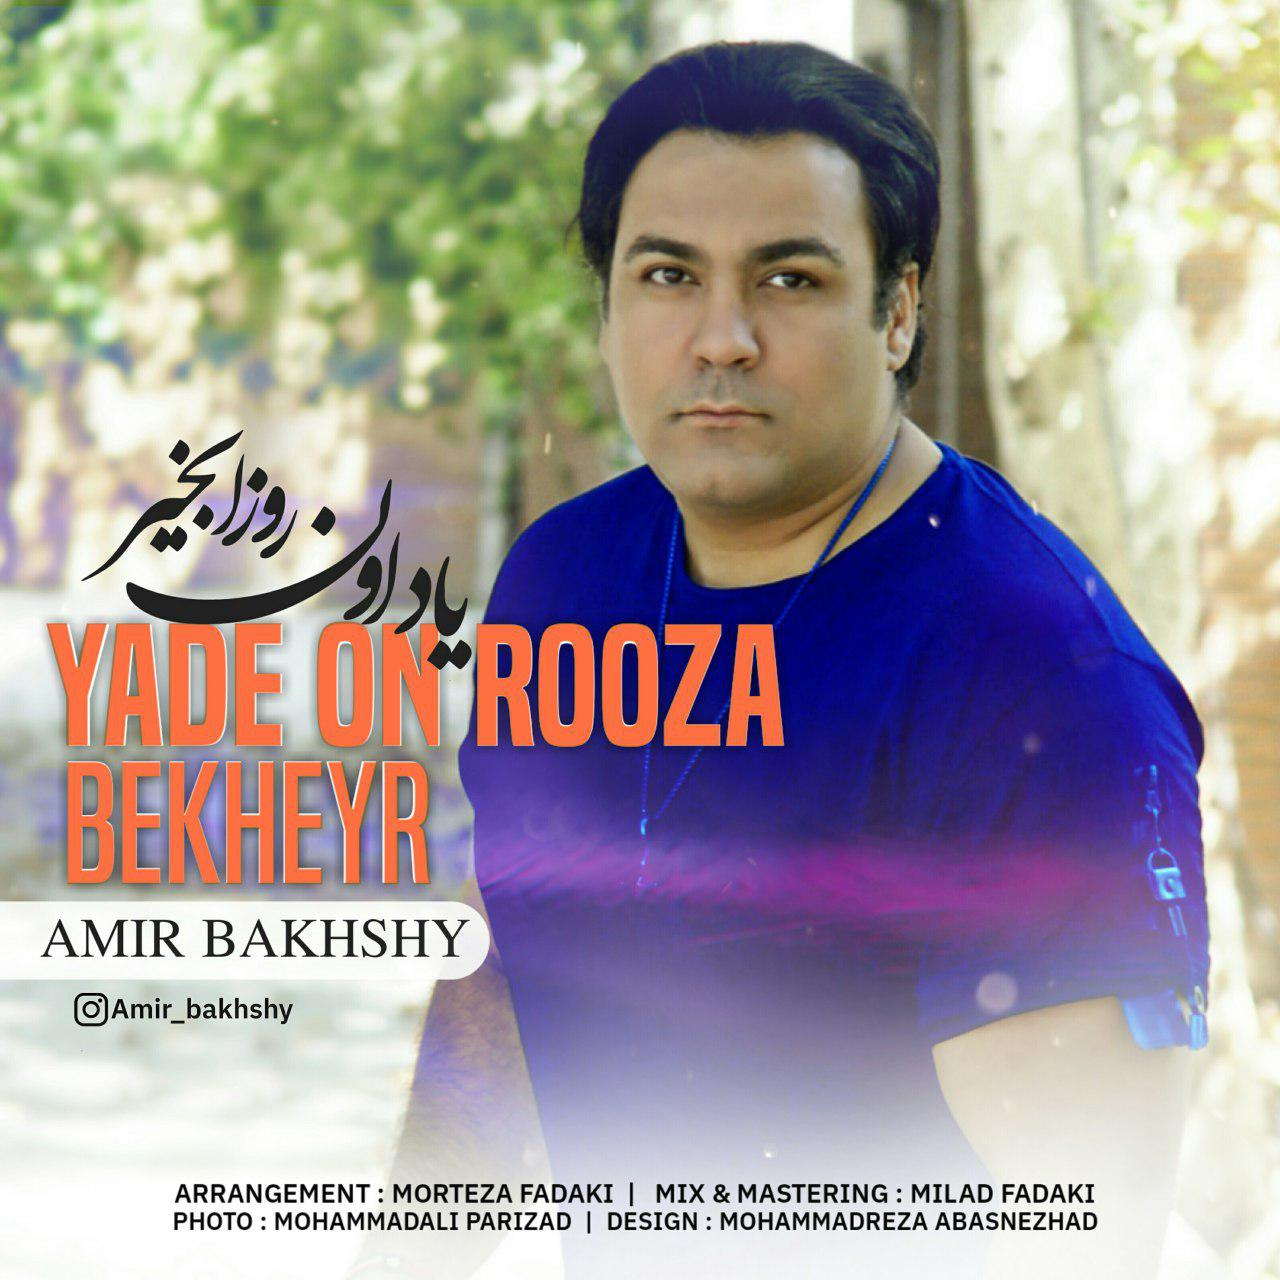 Amir Bakhshy – Yade On Rooza Bekheyr